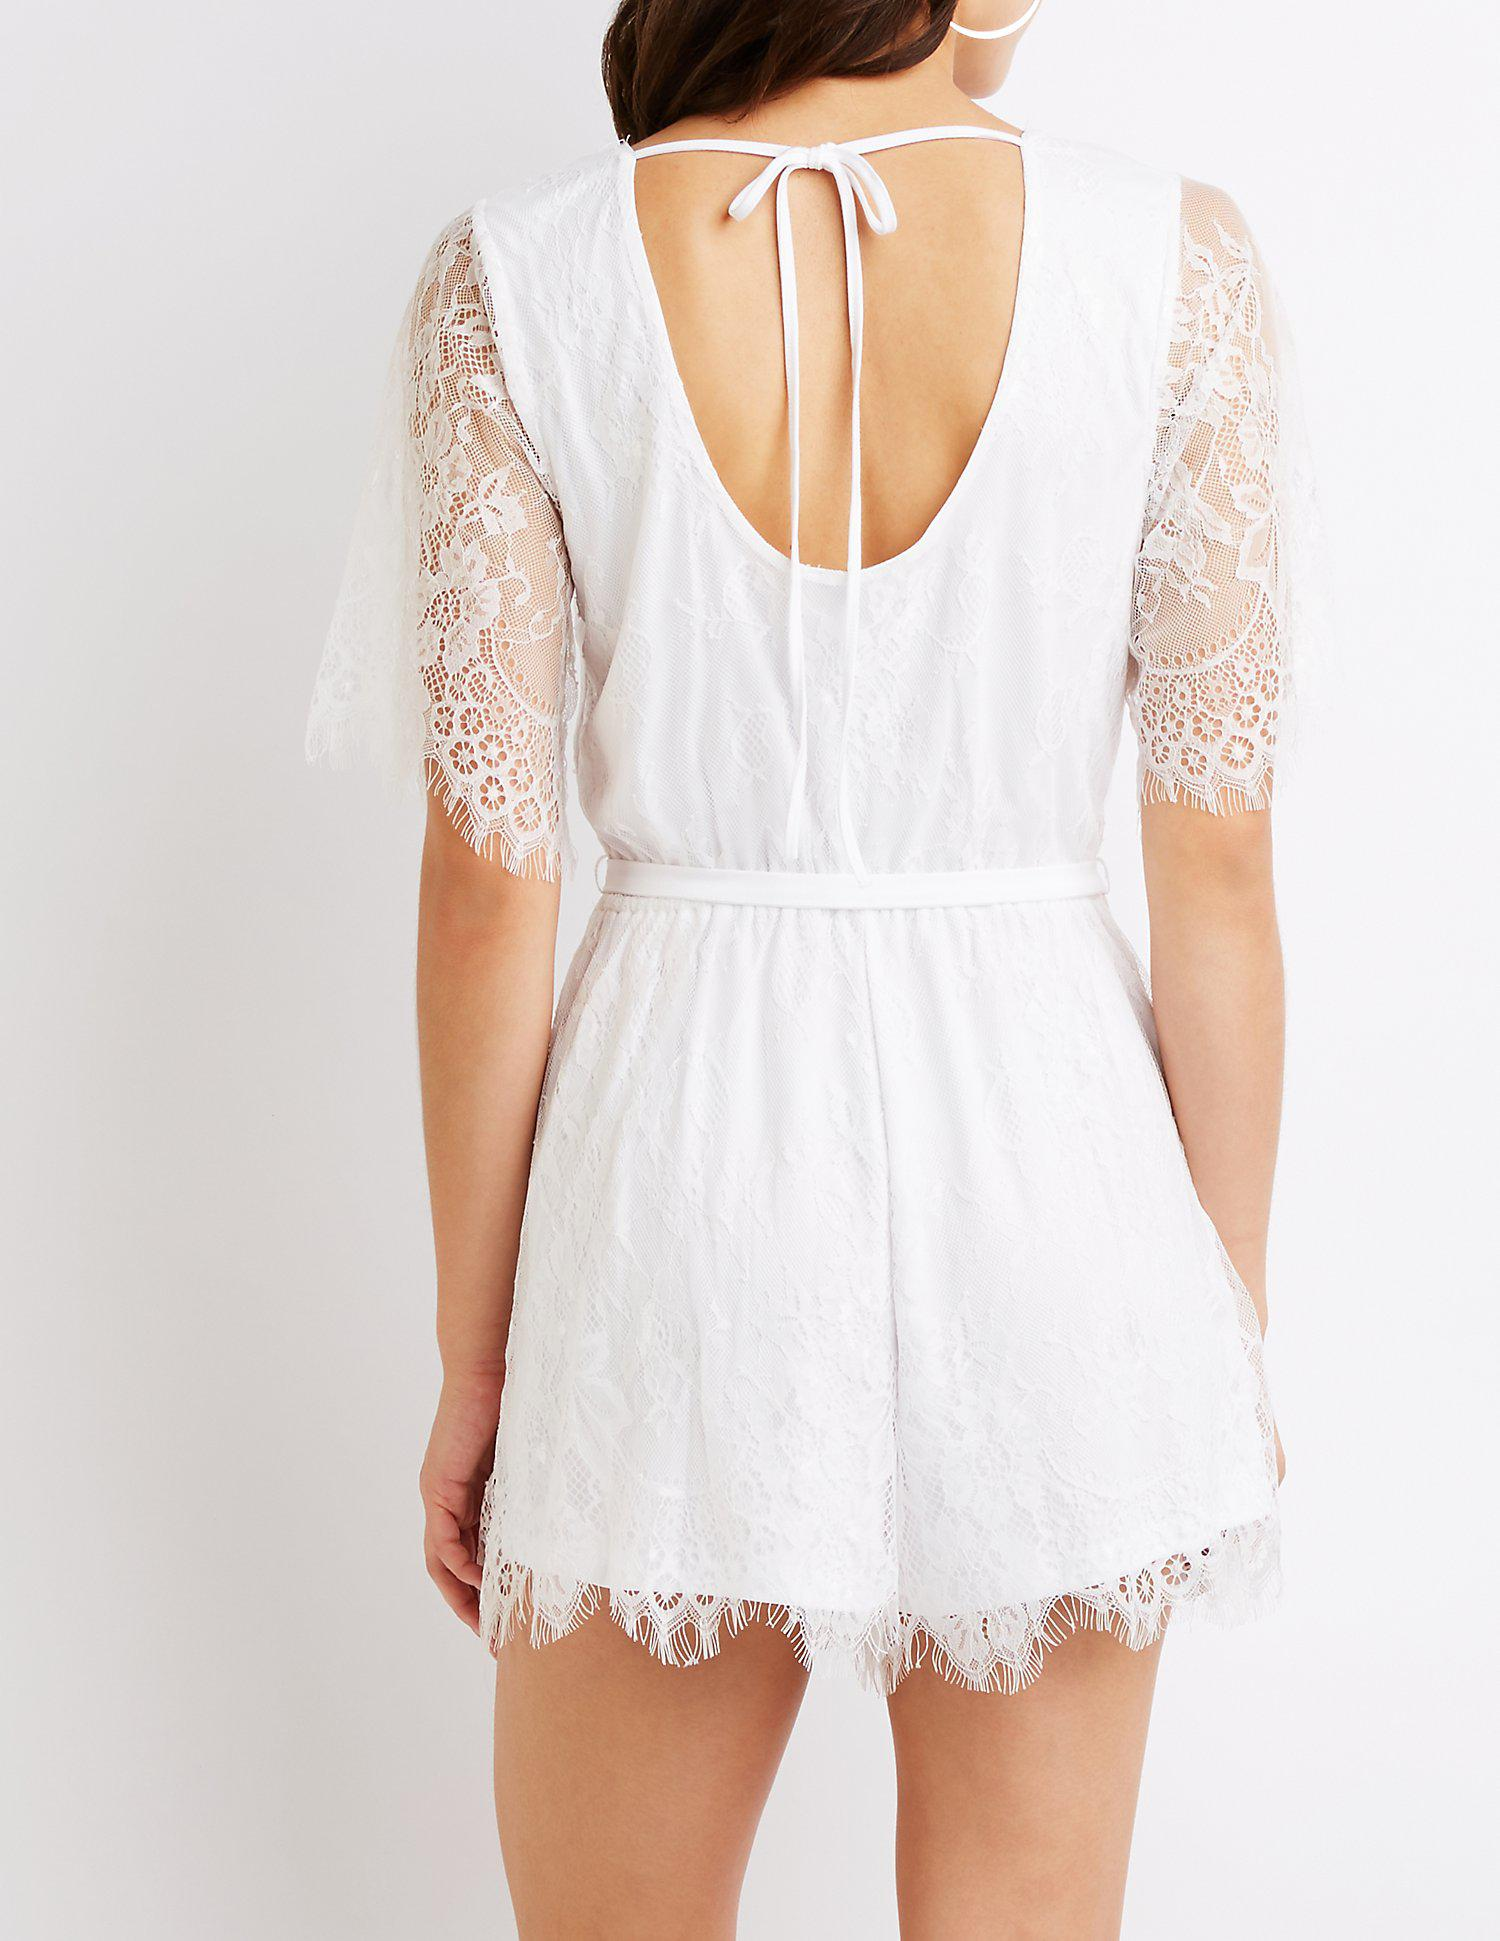 95f0b6adc594 Charlotte Russe - White Floral Lace Wrap Romper - Lyst. View fullscreen